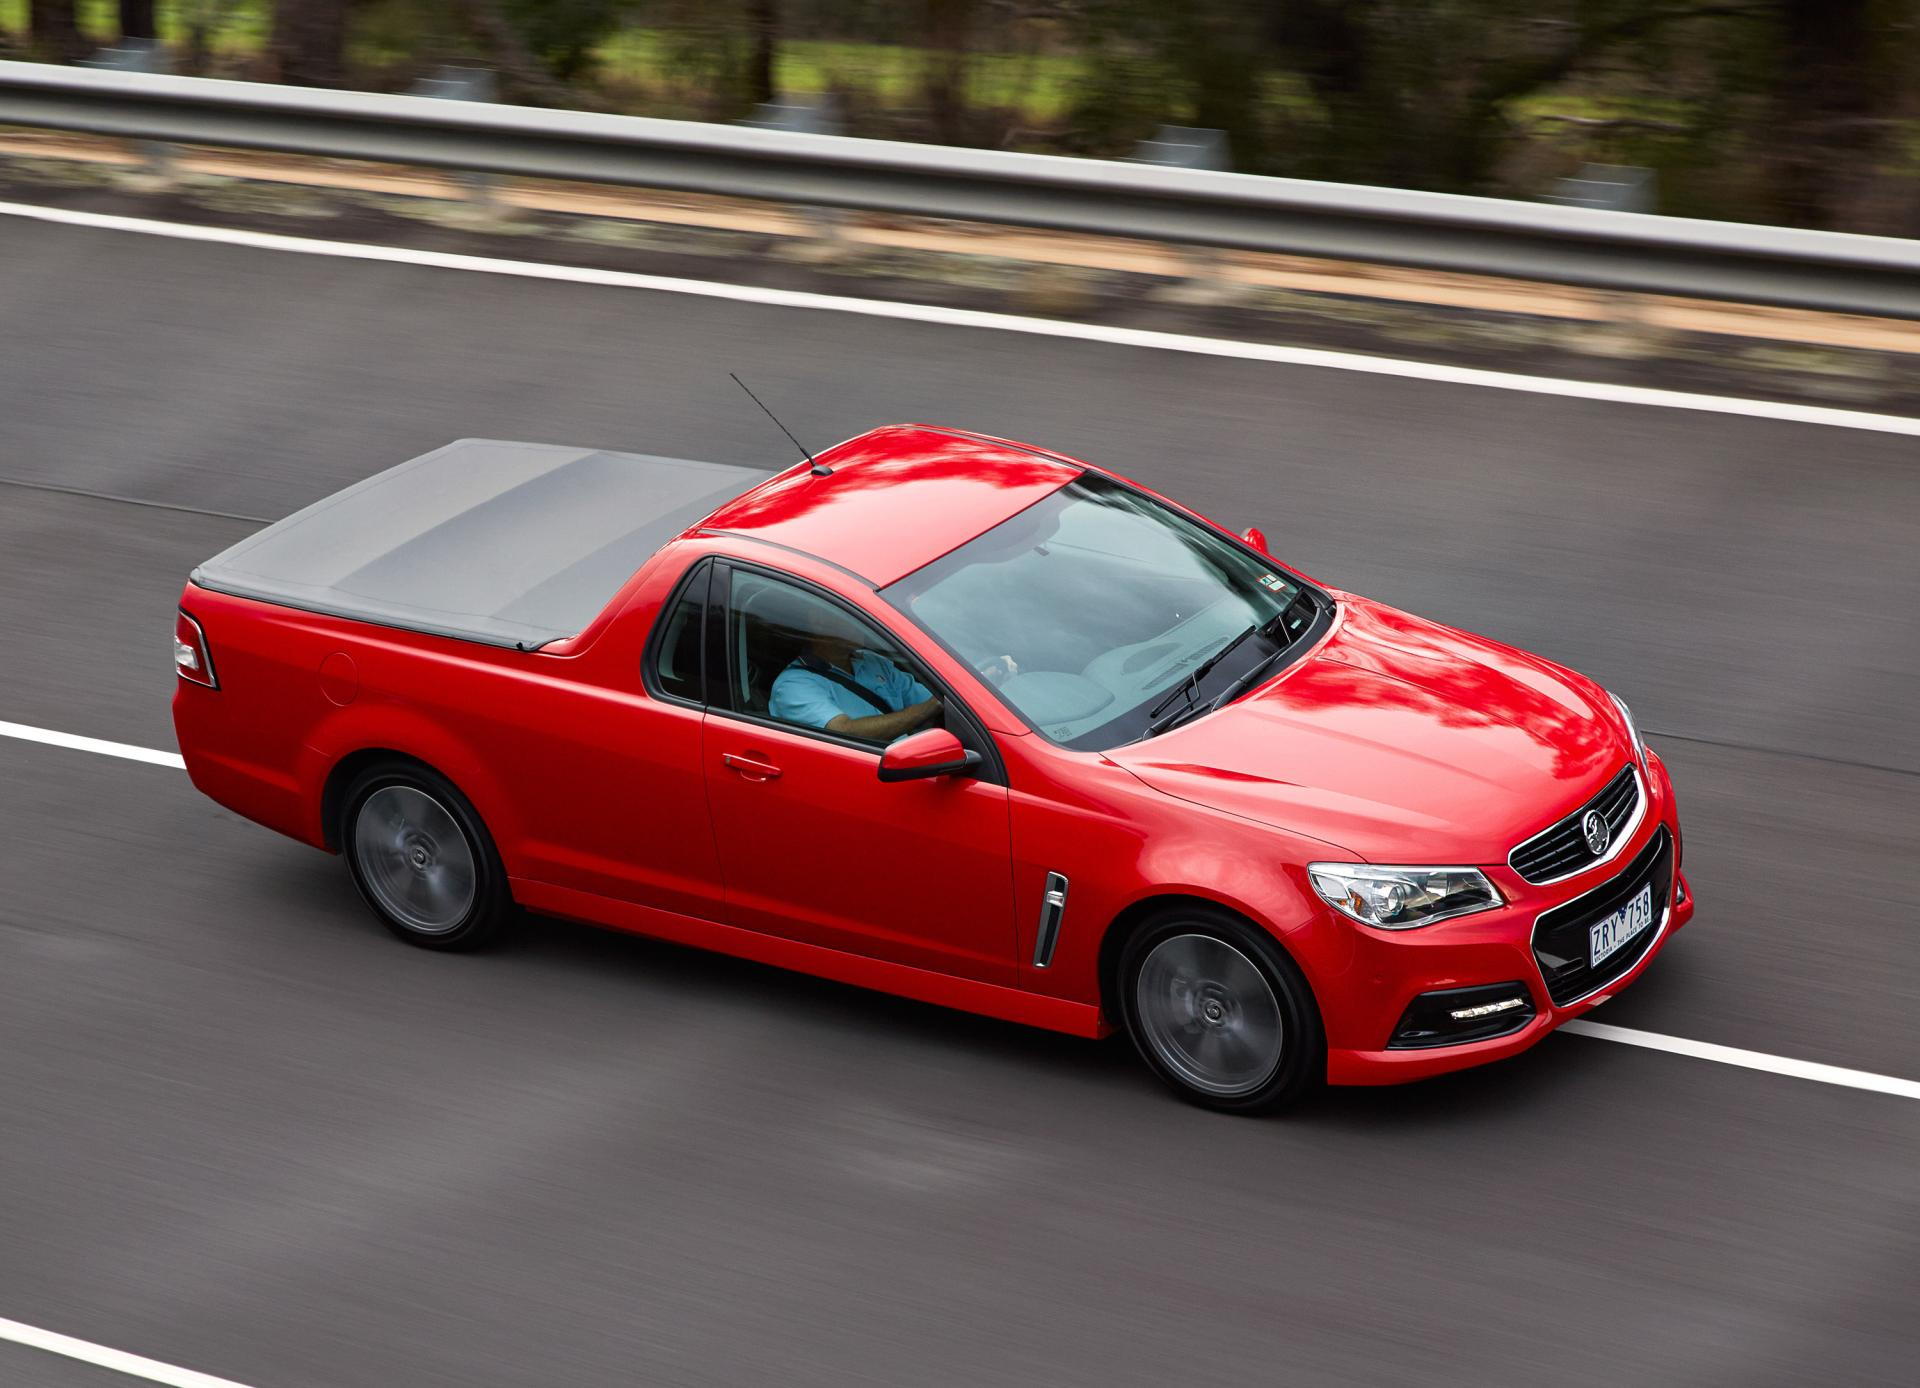 2014 Holden VF Commodore Ute SV6 News and Information ...